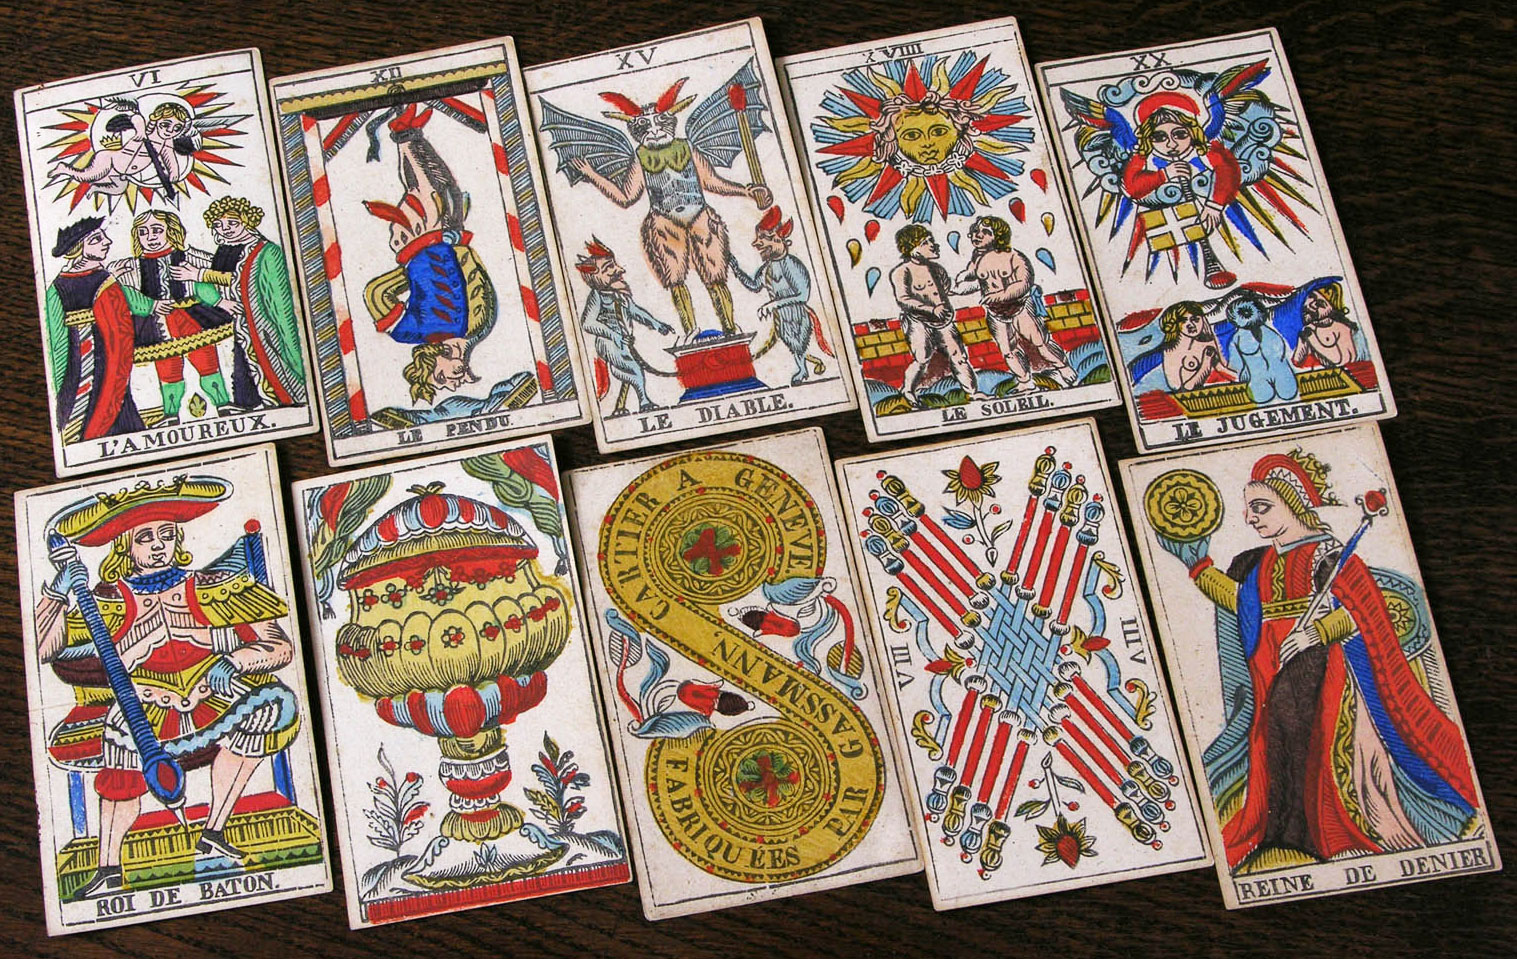 Tarot mythology the surprising origins of the world8217s most top a selection of trump cards top row and pip cards bottom biocorpaavc Choice Image